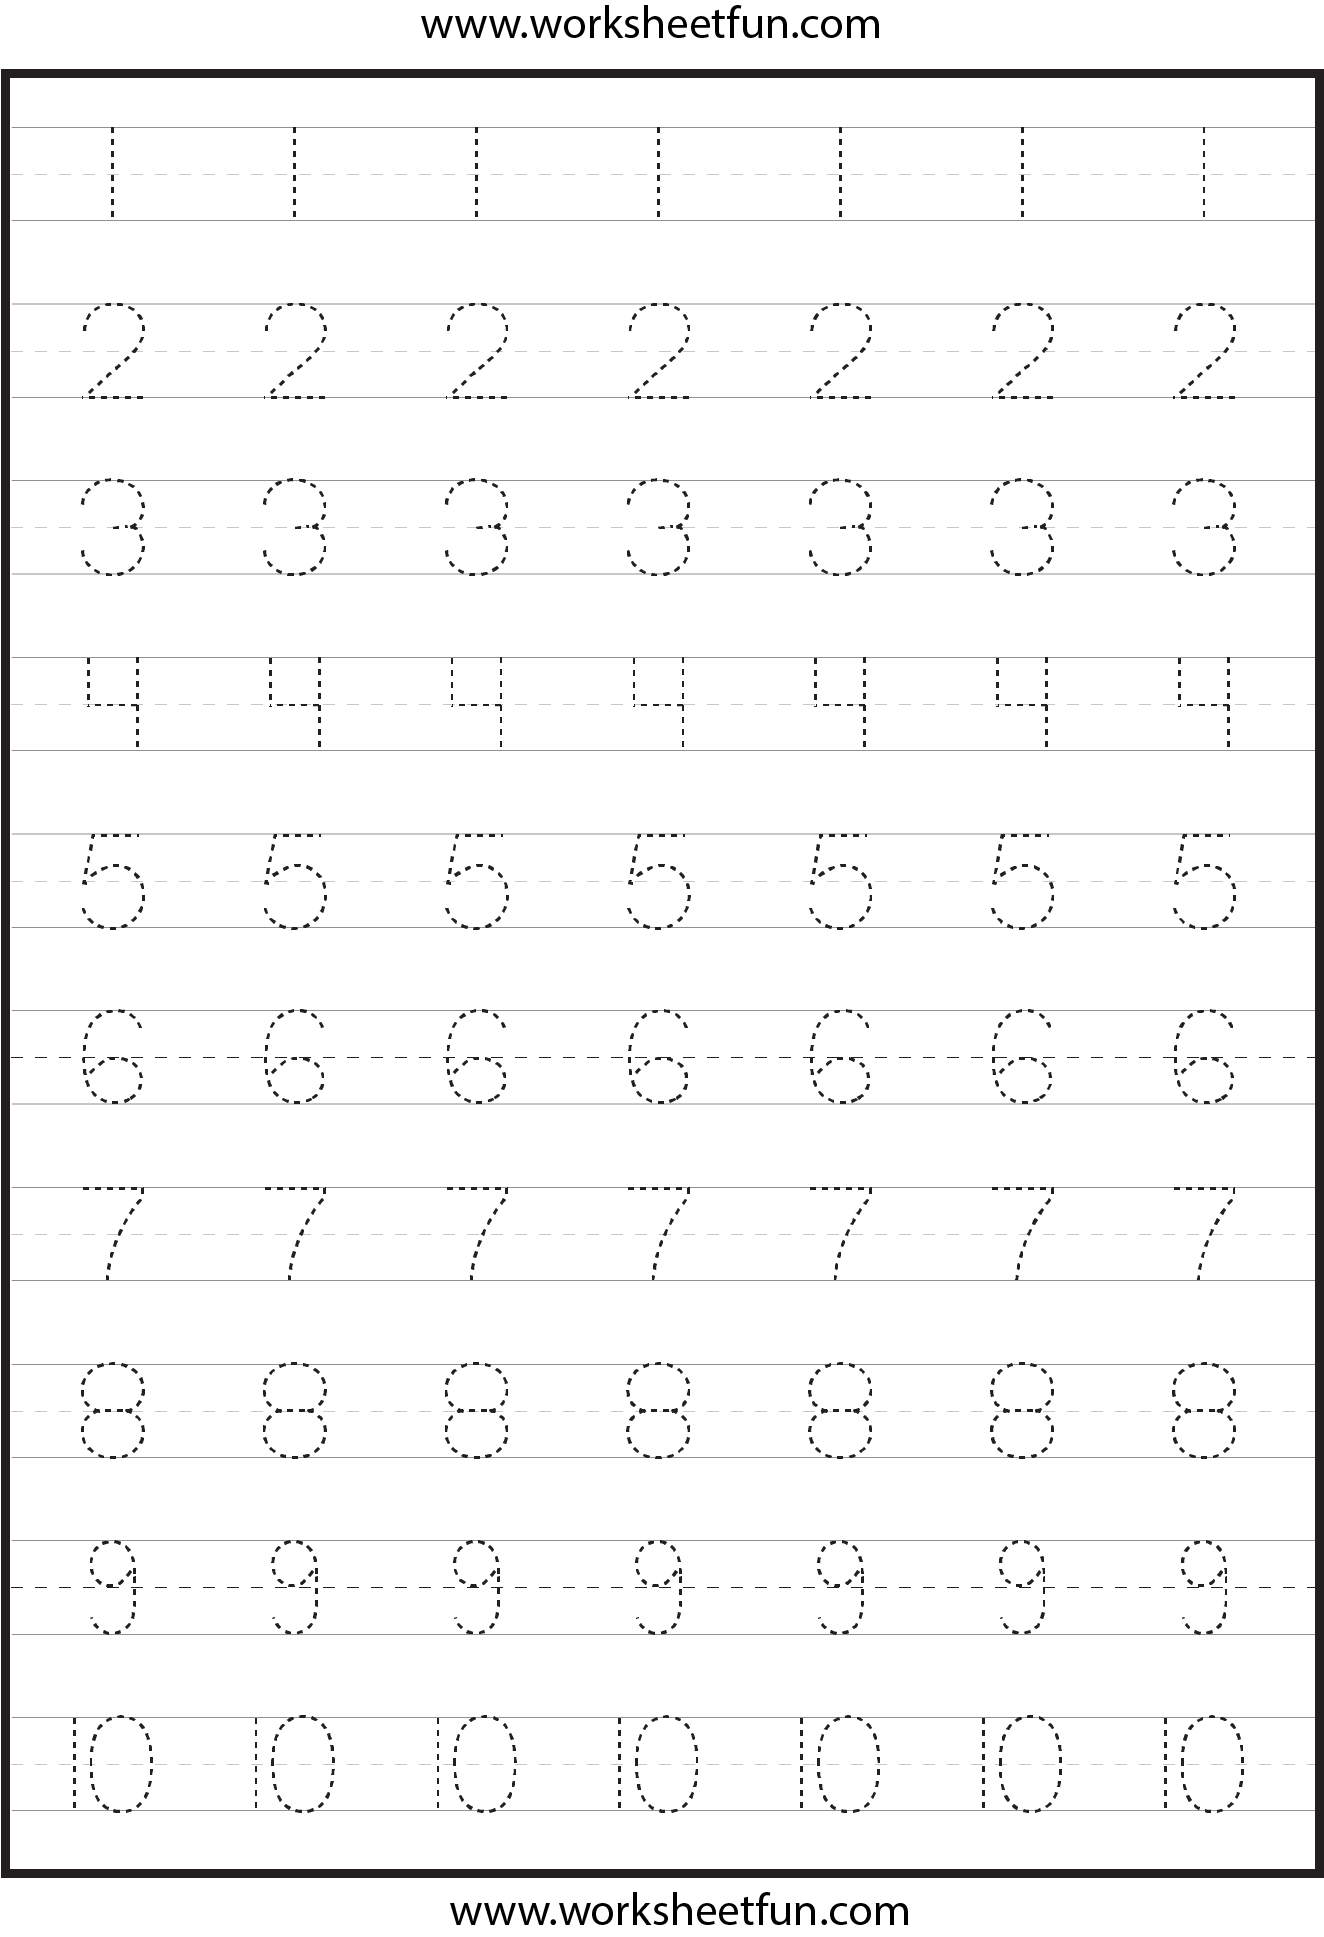 Printables Number Tracing Worksheets For Kindergarten 1000 images about 123 number worksheet on pinterest worksheets for kindergarten formation and words